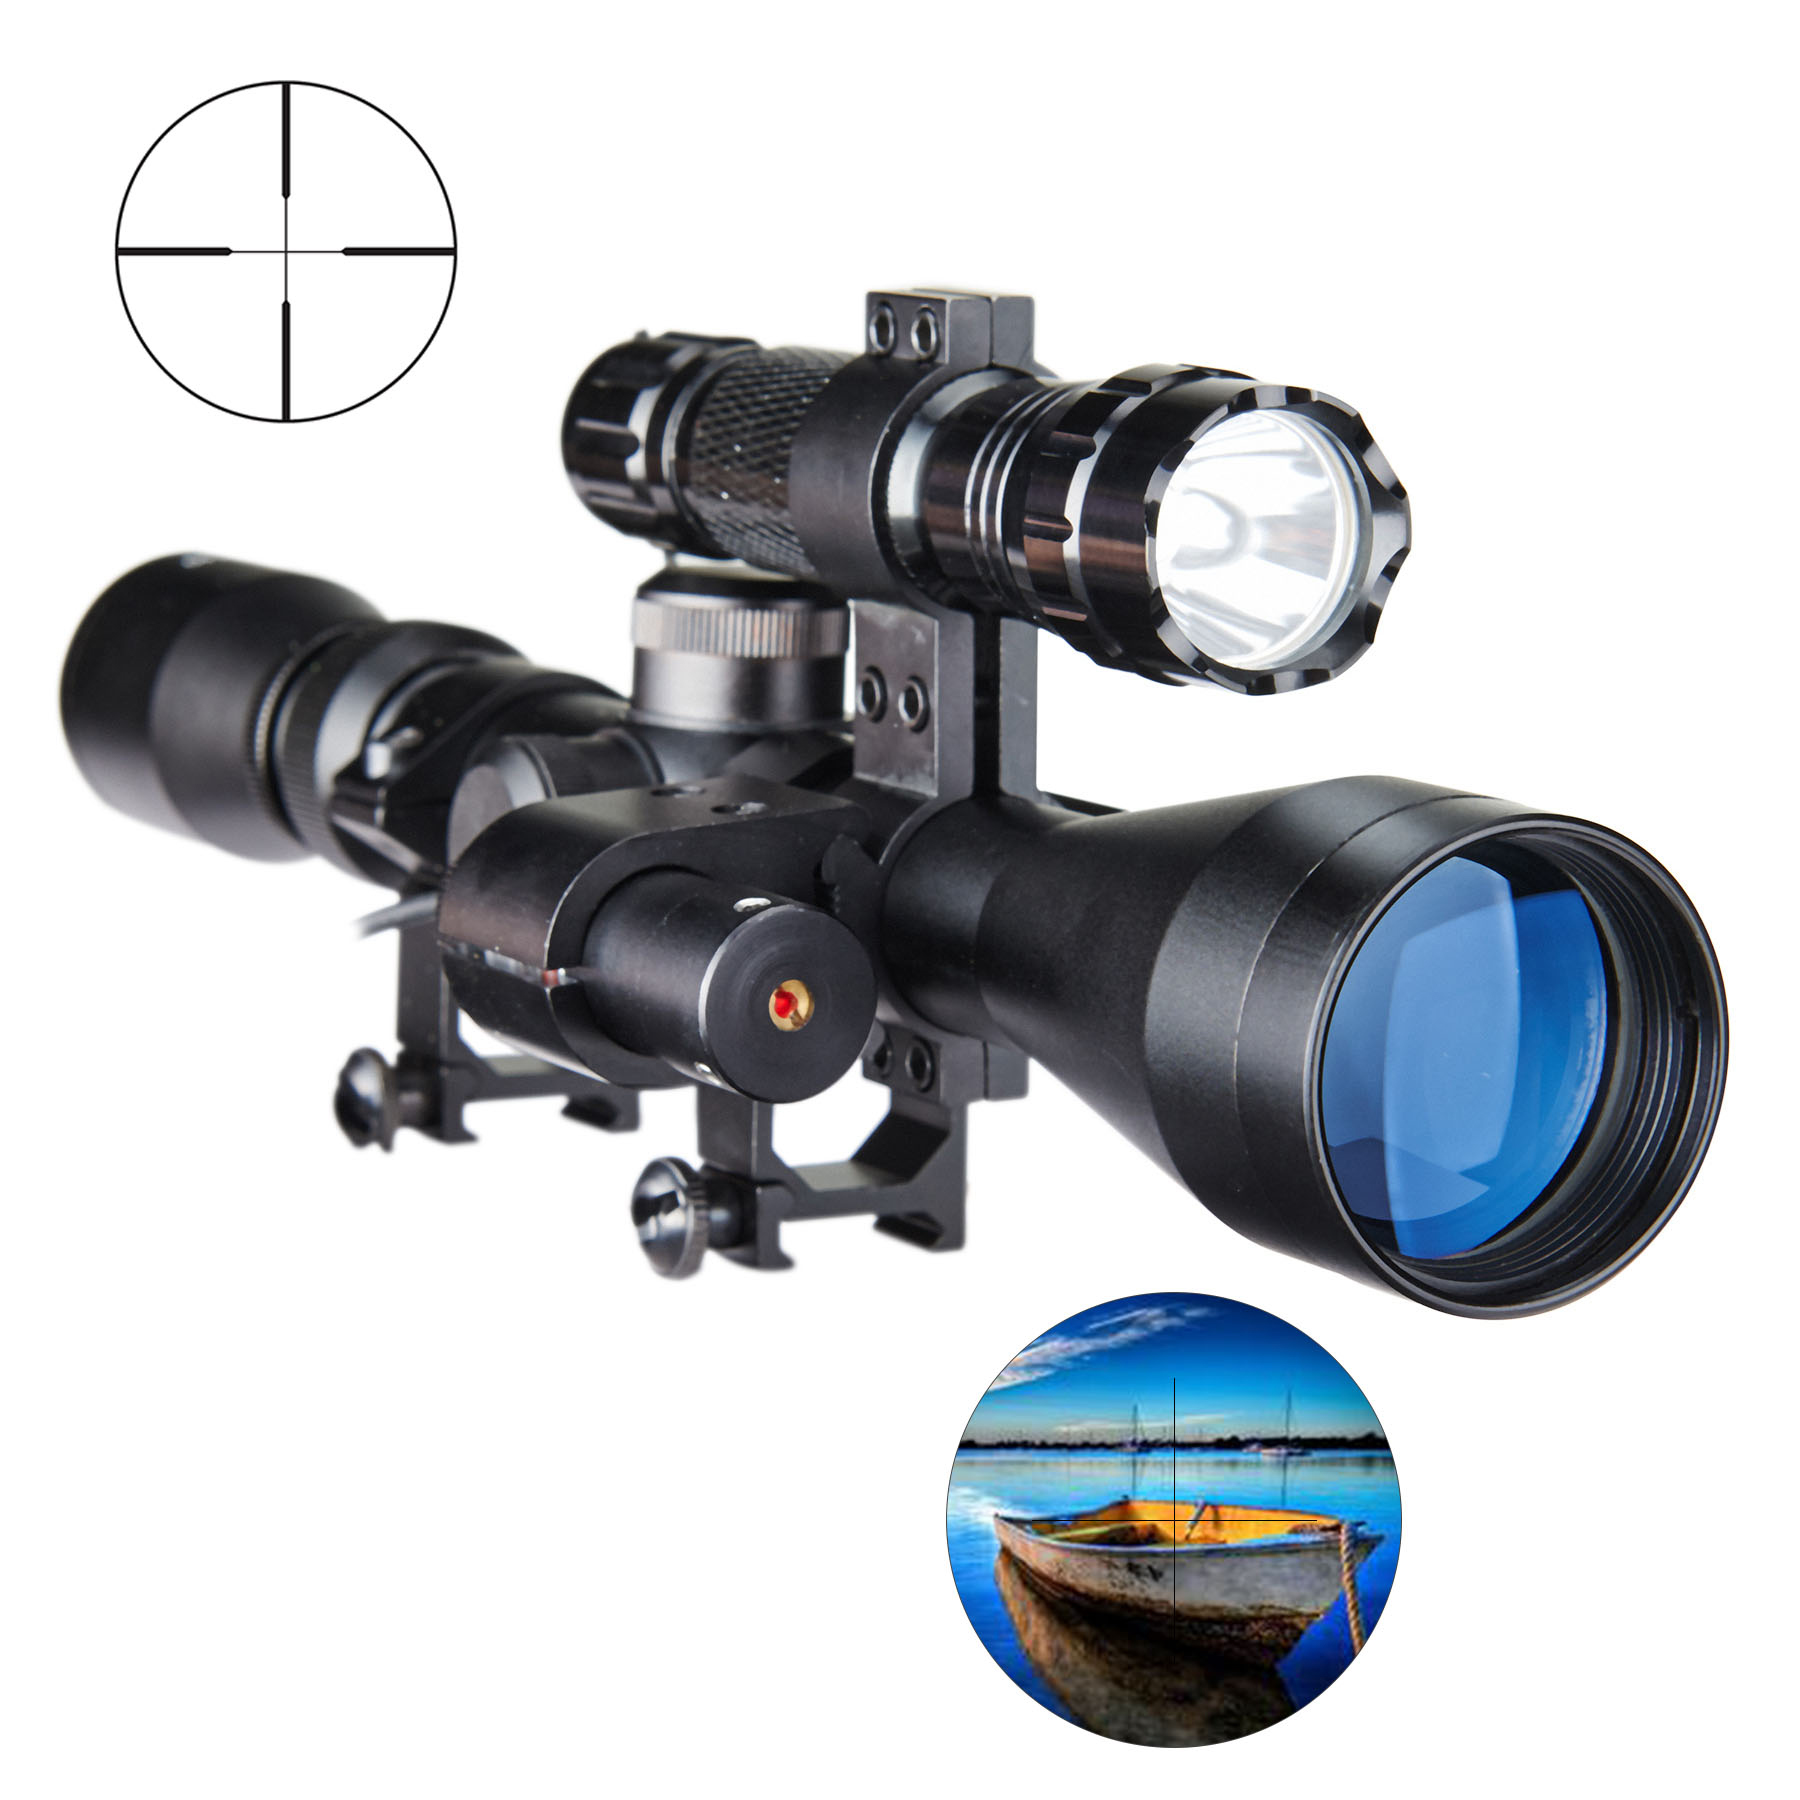 3-9X40mm Reflex Cross Reticle Riflescope with Torch Hunting